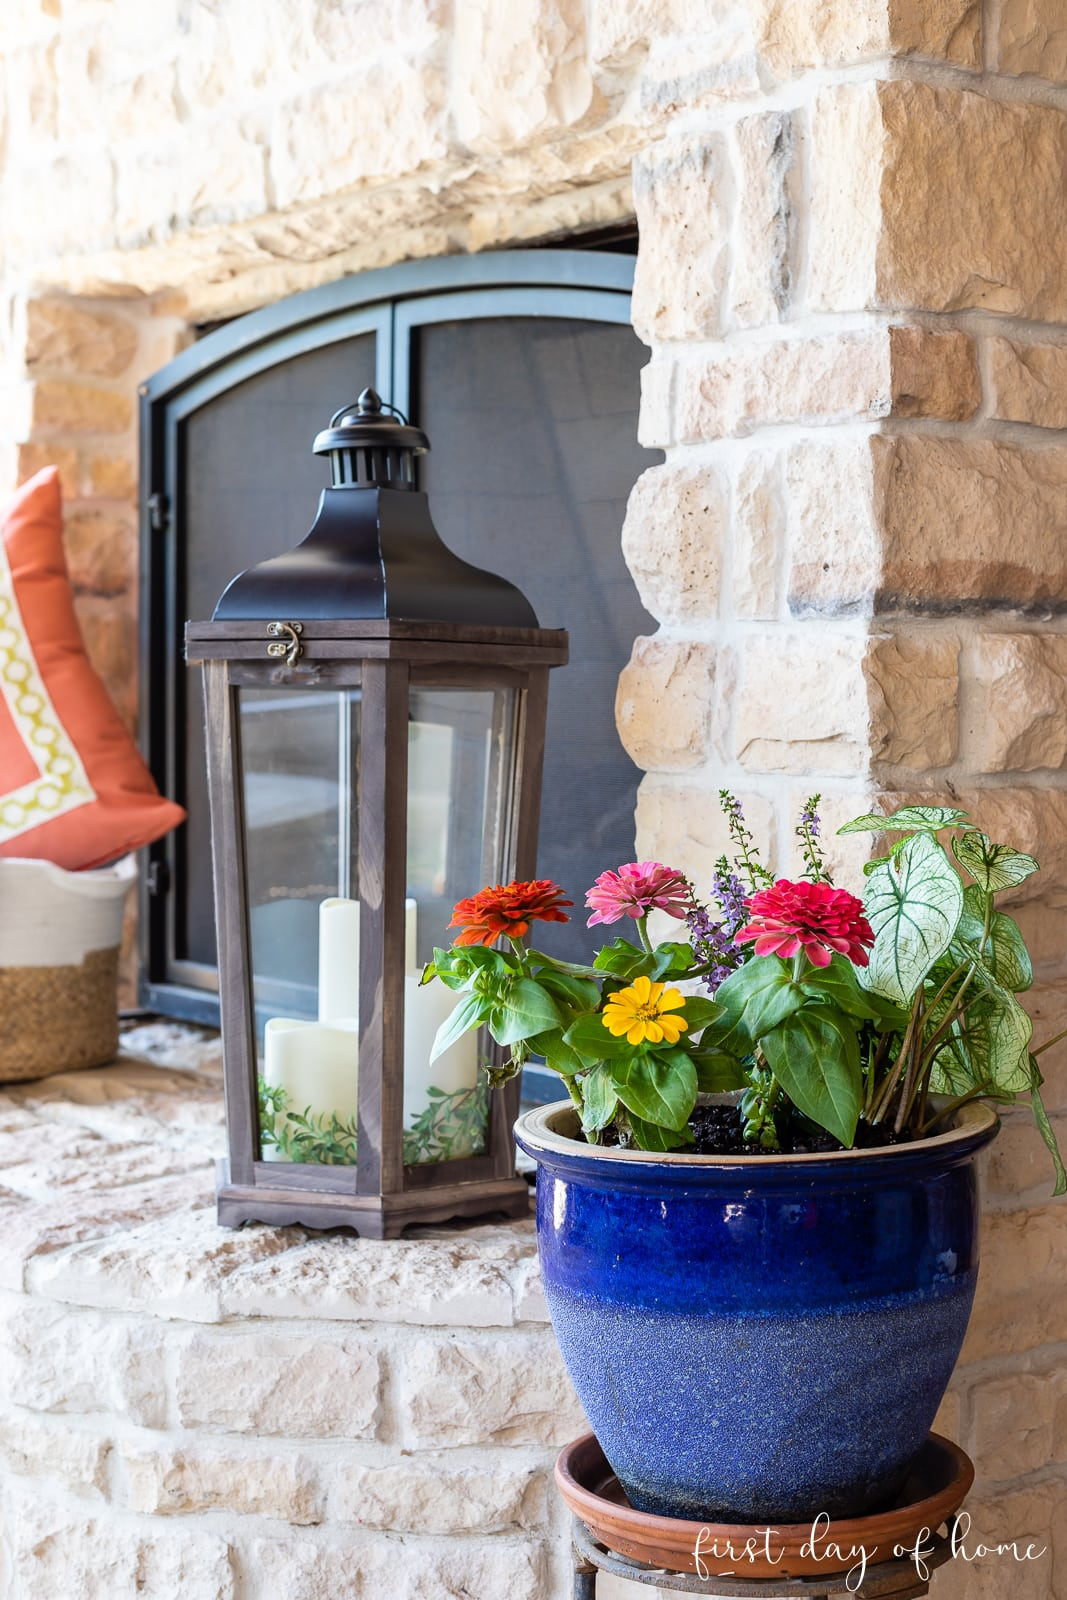 Potted plant by fireplace with lantern in background